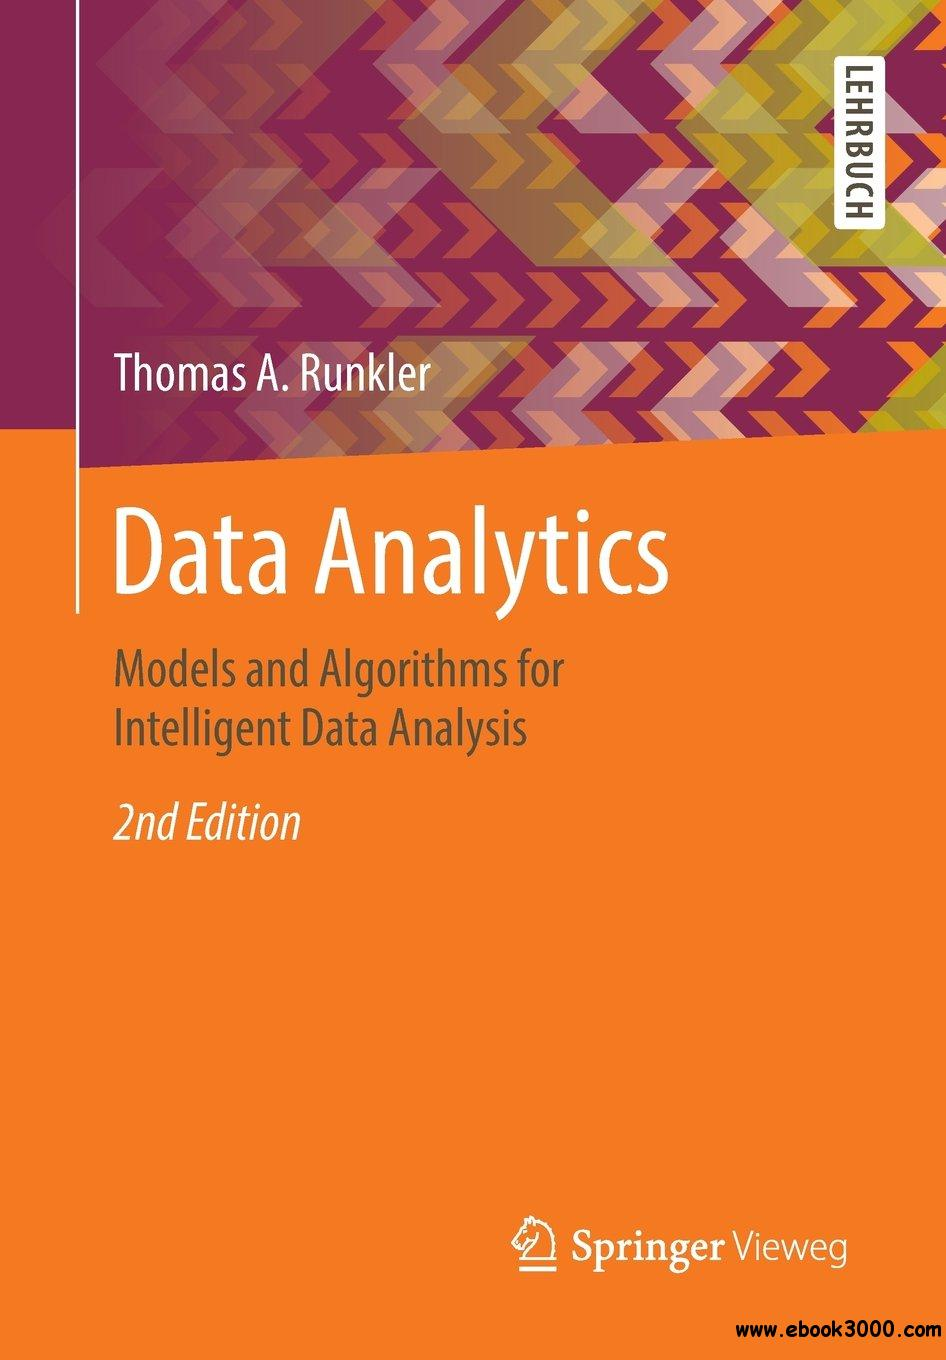 Data Analytics: Models and Algorithms for Intelligent Data Analysis, Second Edition